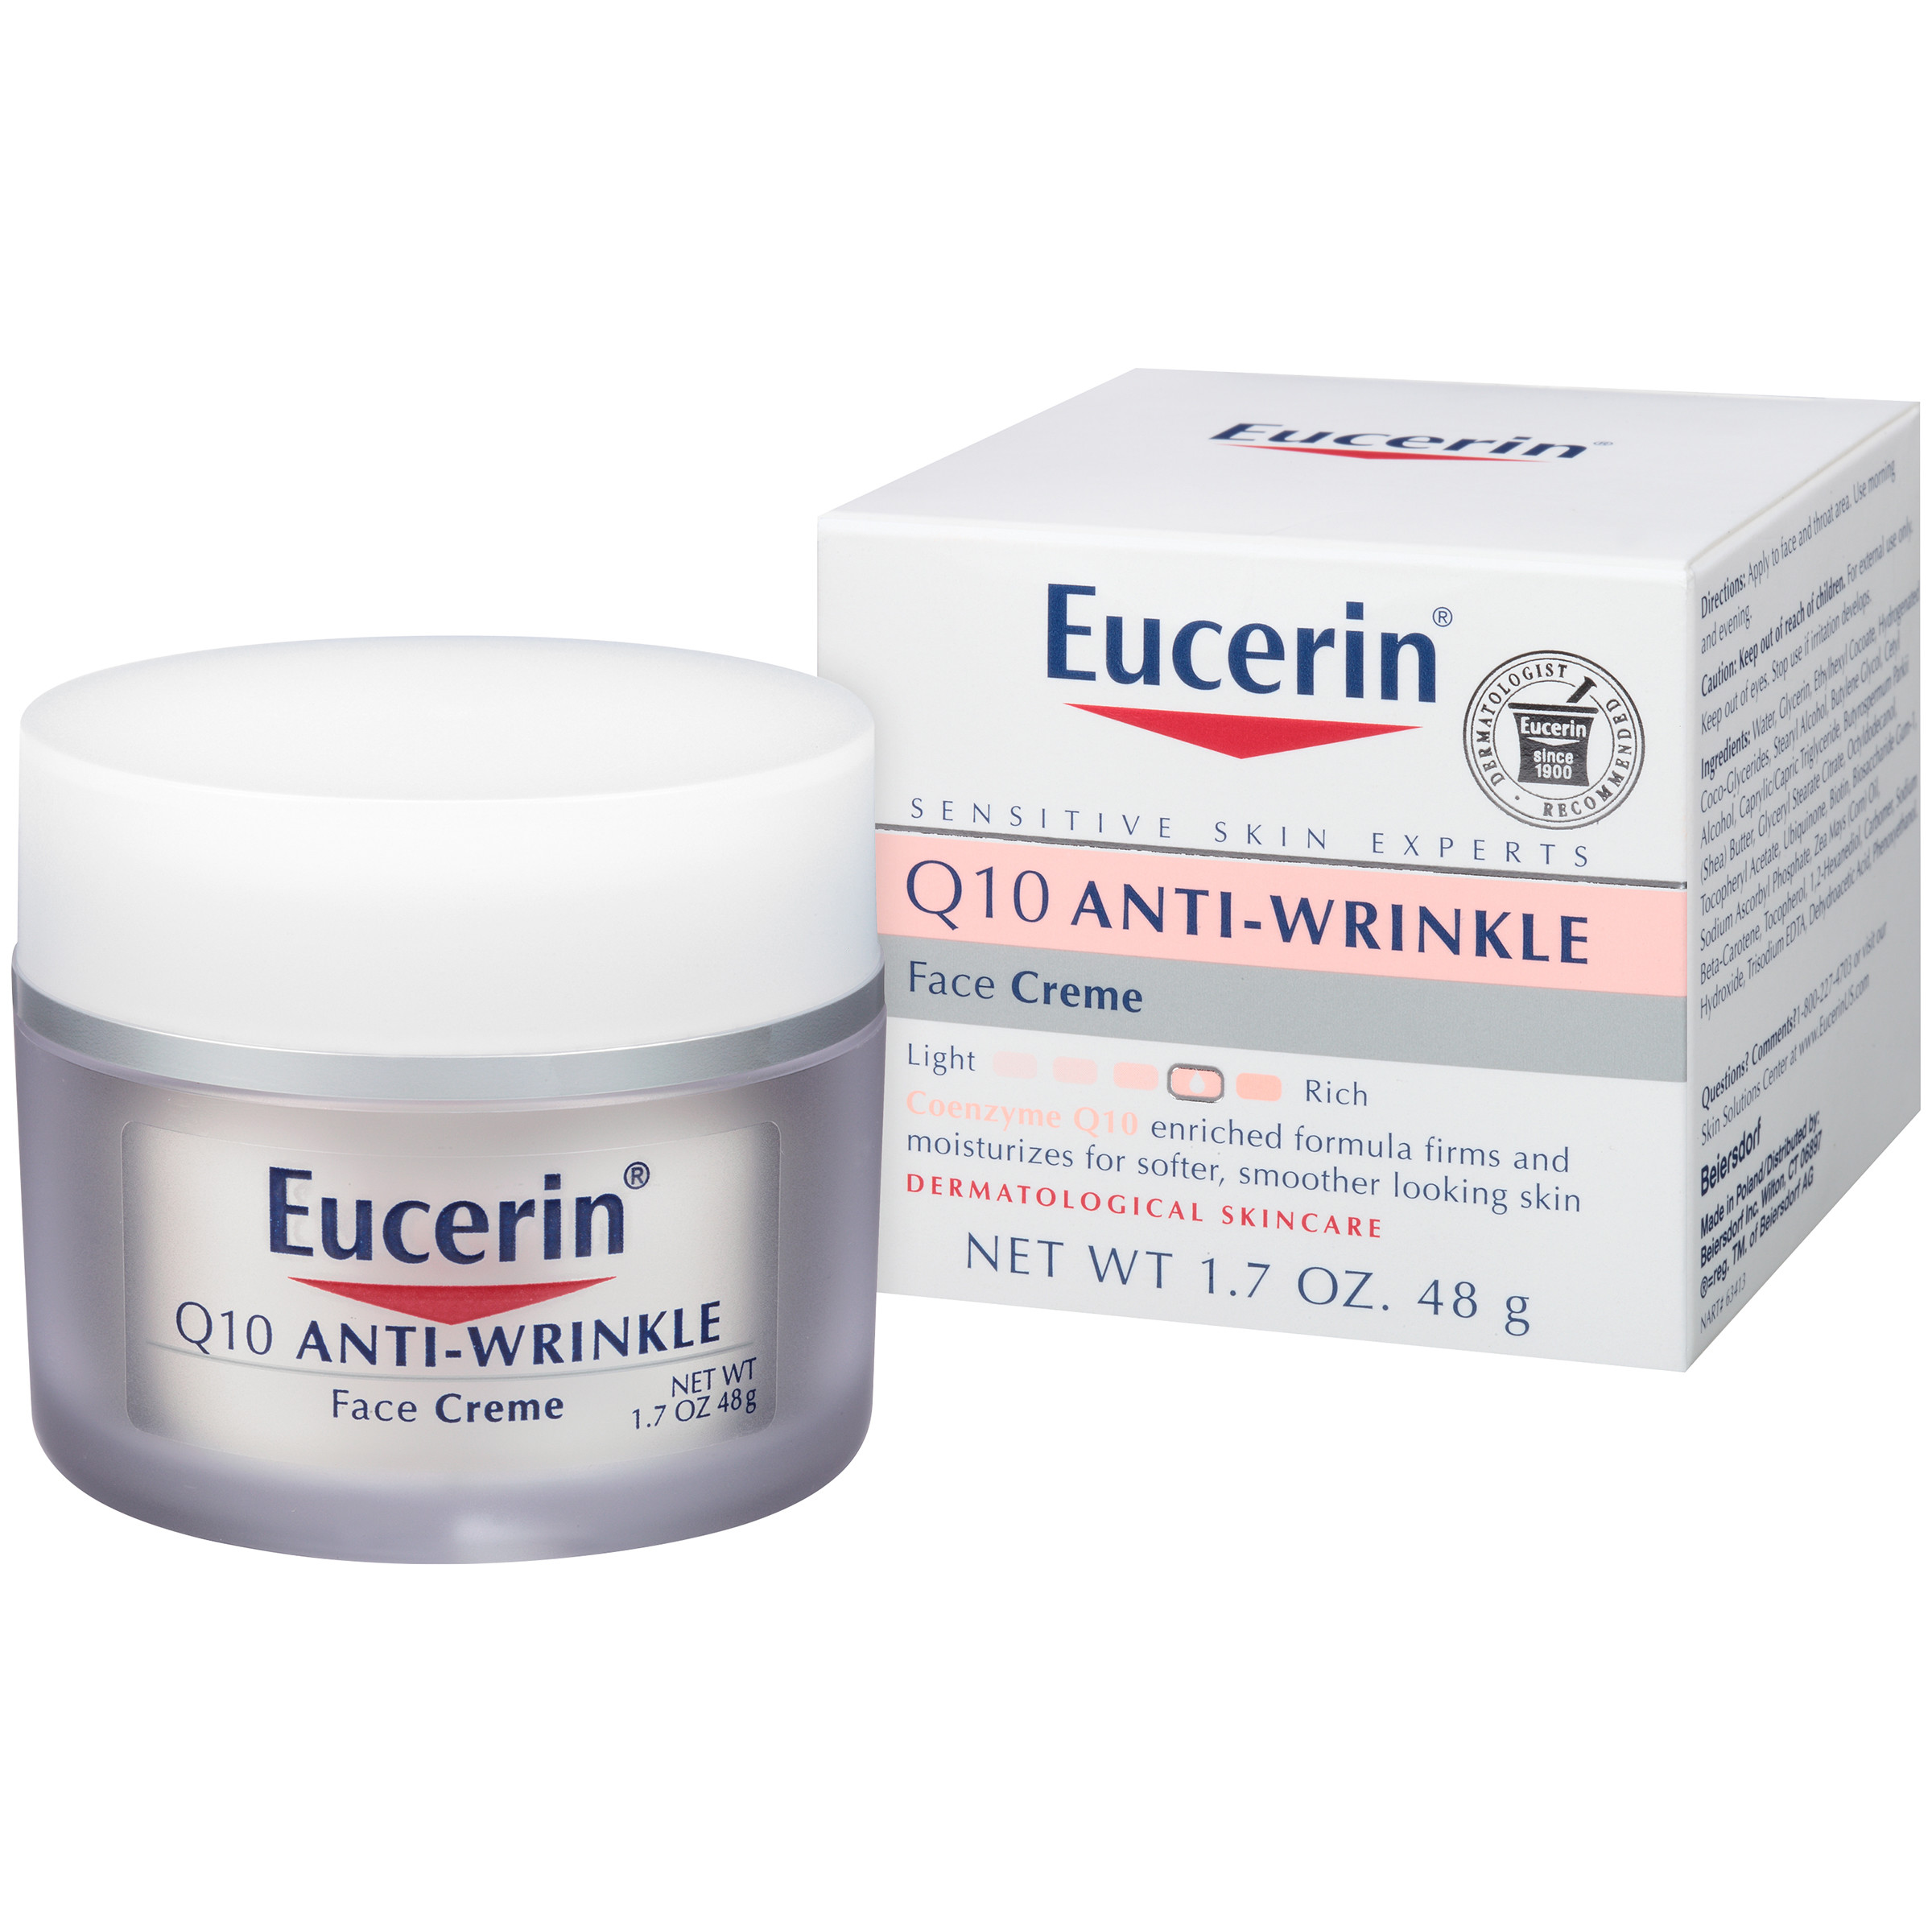 Eucerin Q10 Anti-Wrinkle Sensitive Skin Face Creme, 1.7 oz.